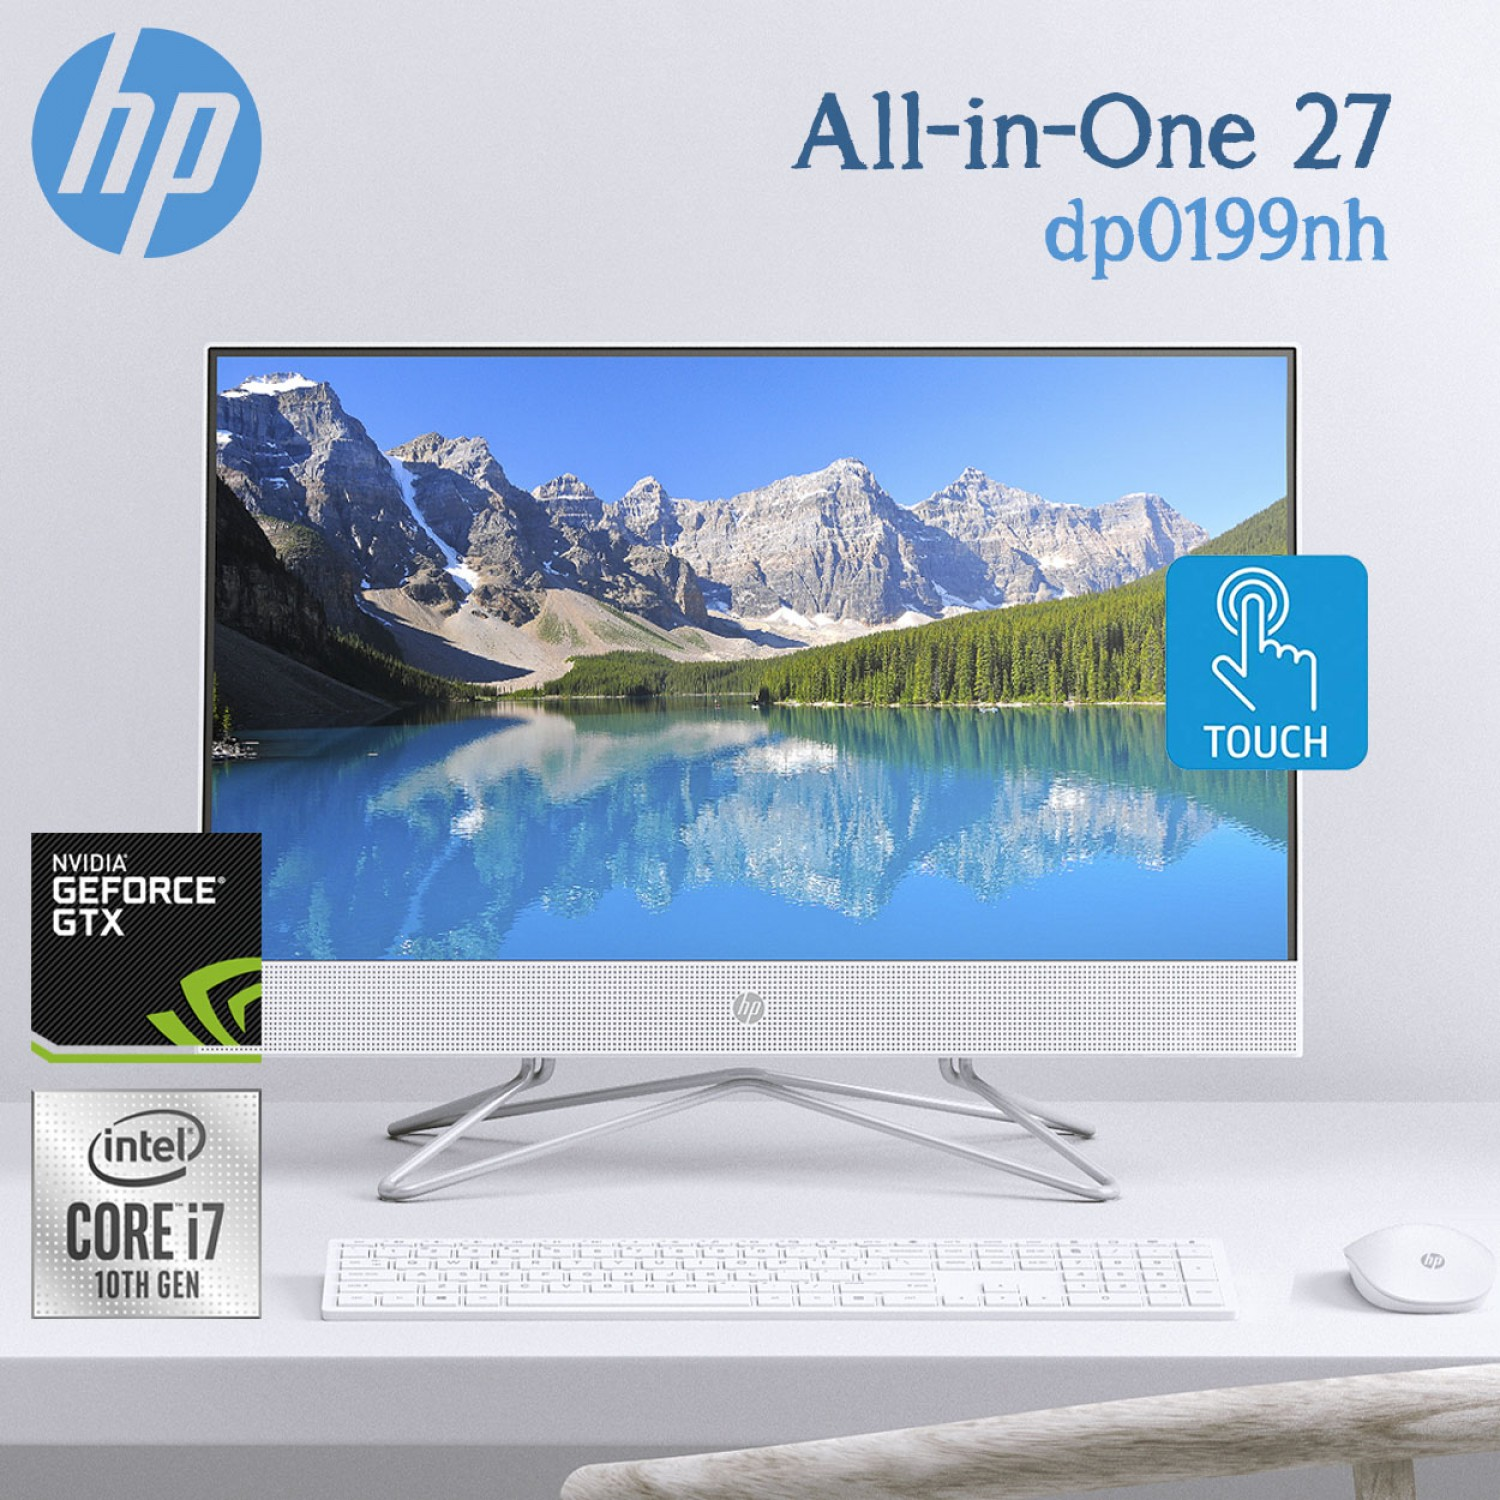 """HP Laptops AIO HP All-in-One 27-dp0199nh 10th Gen i7-1065G7 16GB Memory 2TB HDD NVIDIA MX330 2GB 27"""" Full HD Multitouch Natural Silver"""